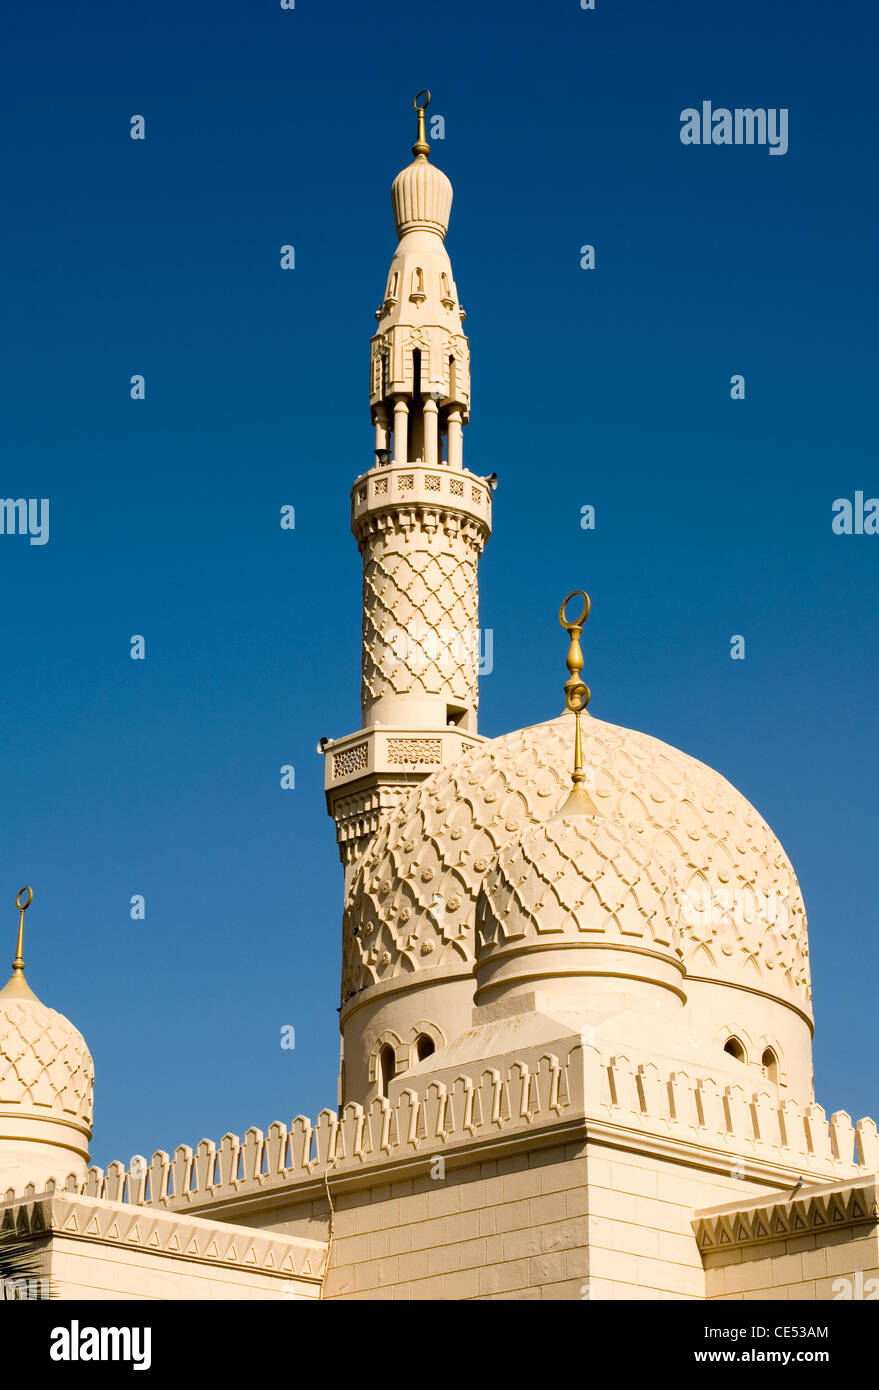 The domes and minarets of the Jumeirah Mosque, Dubai, United Arab Emirates - Stock Image